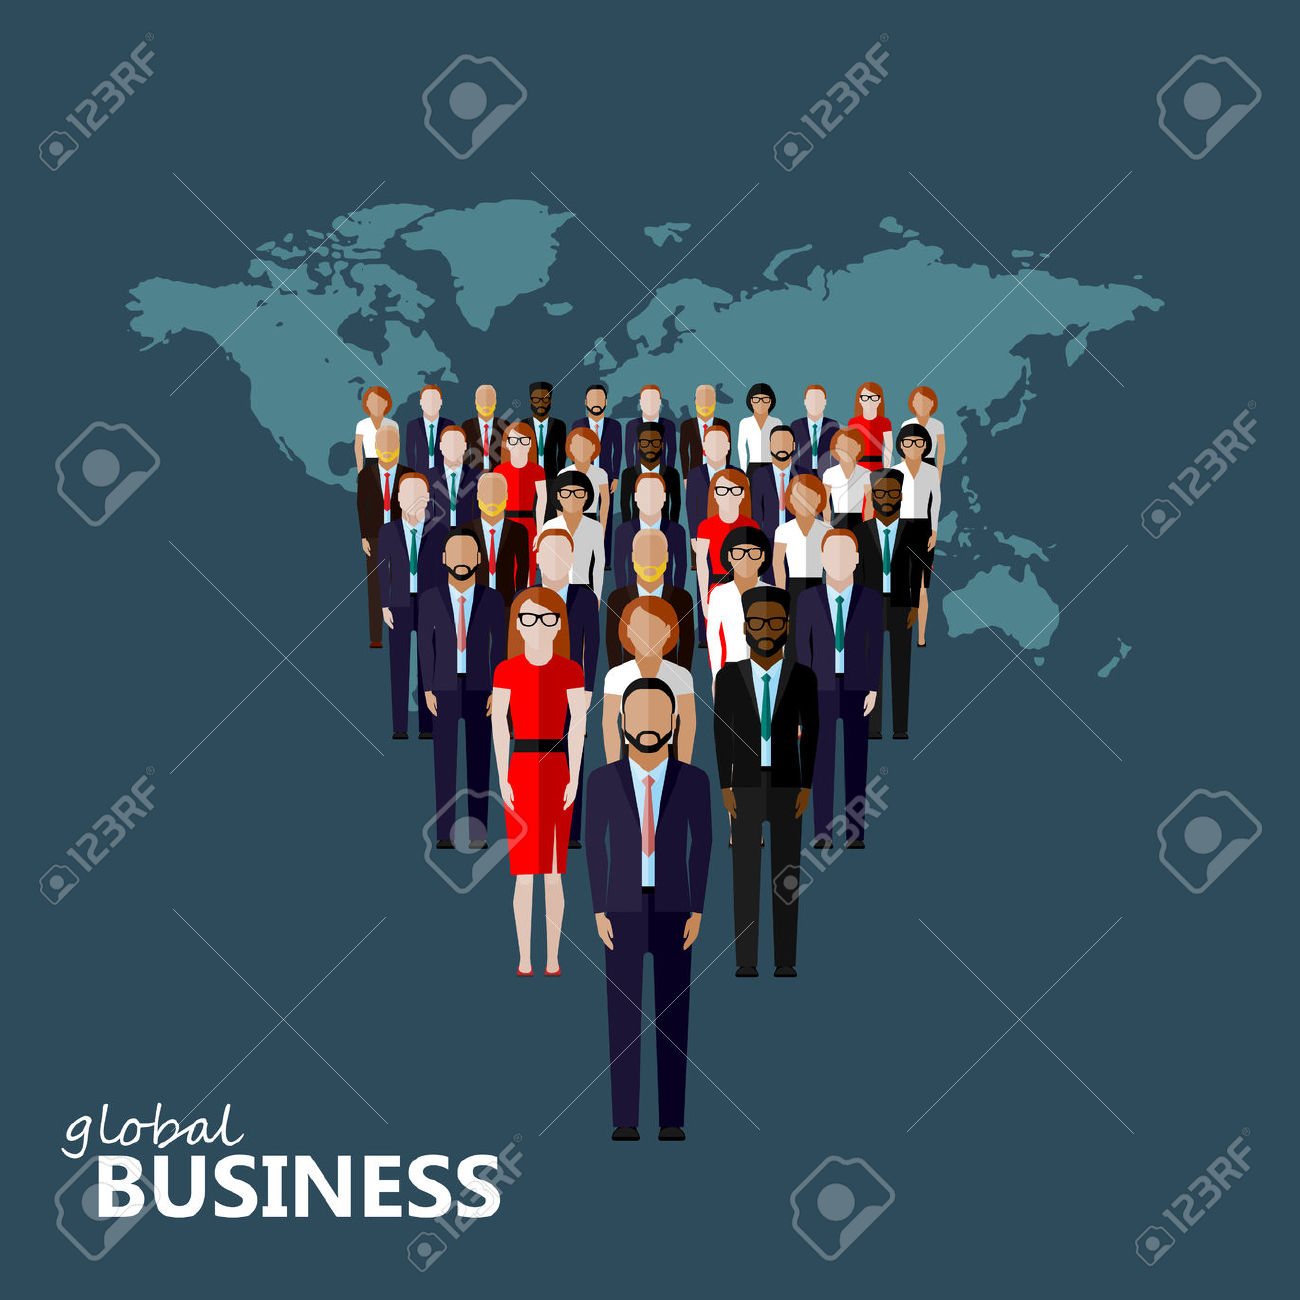 550 Transnational Stock Vector Illustration And Royalty Free.